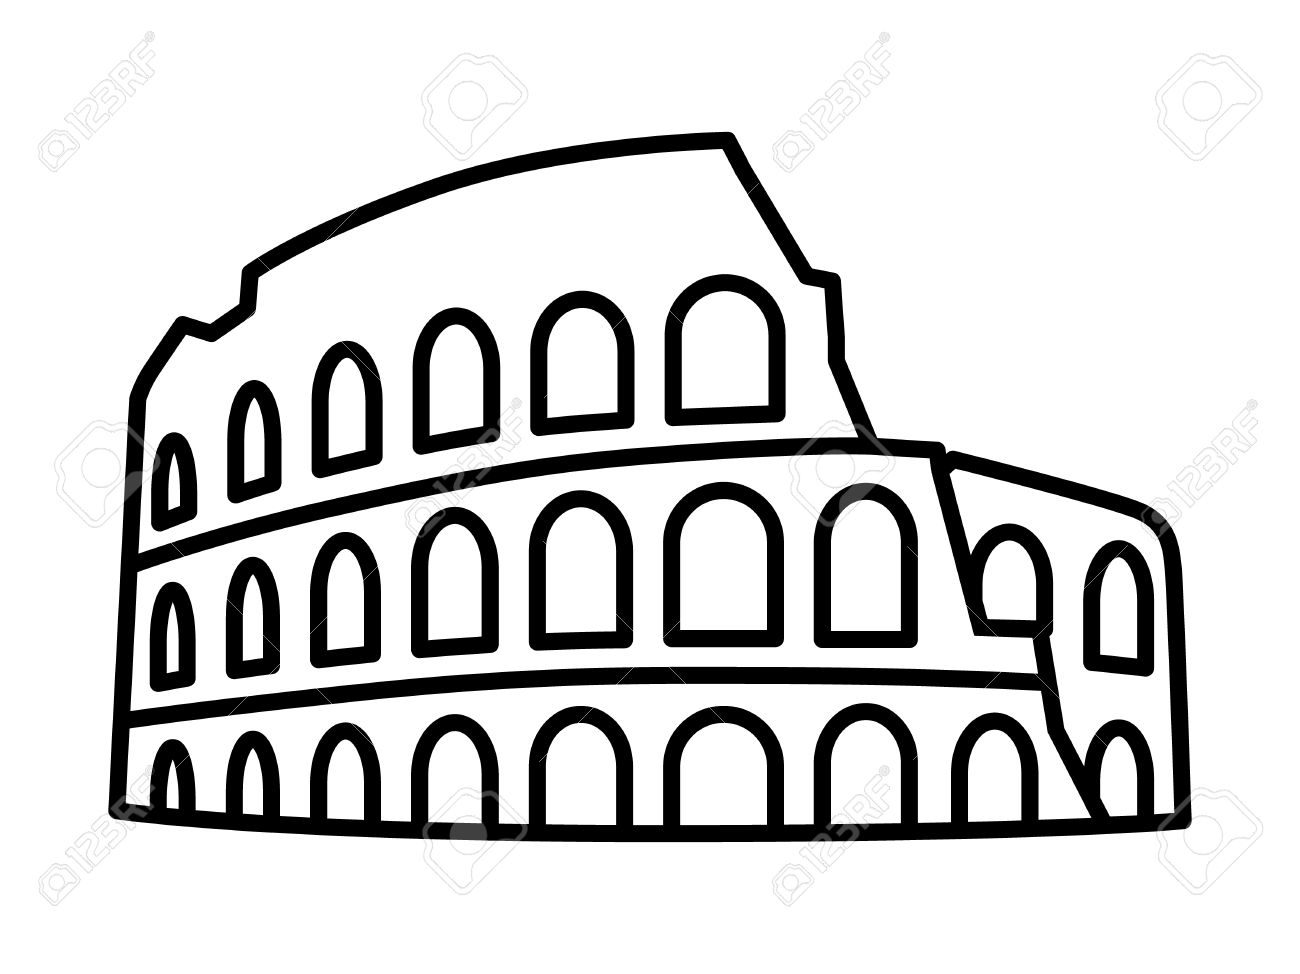 Colosseum Coliseum in Rome, Italy line art icon for travel apps...